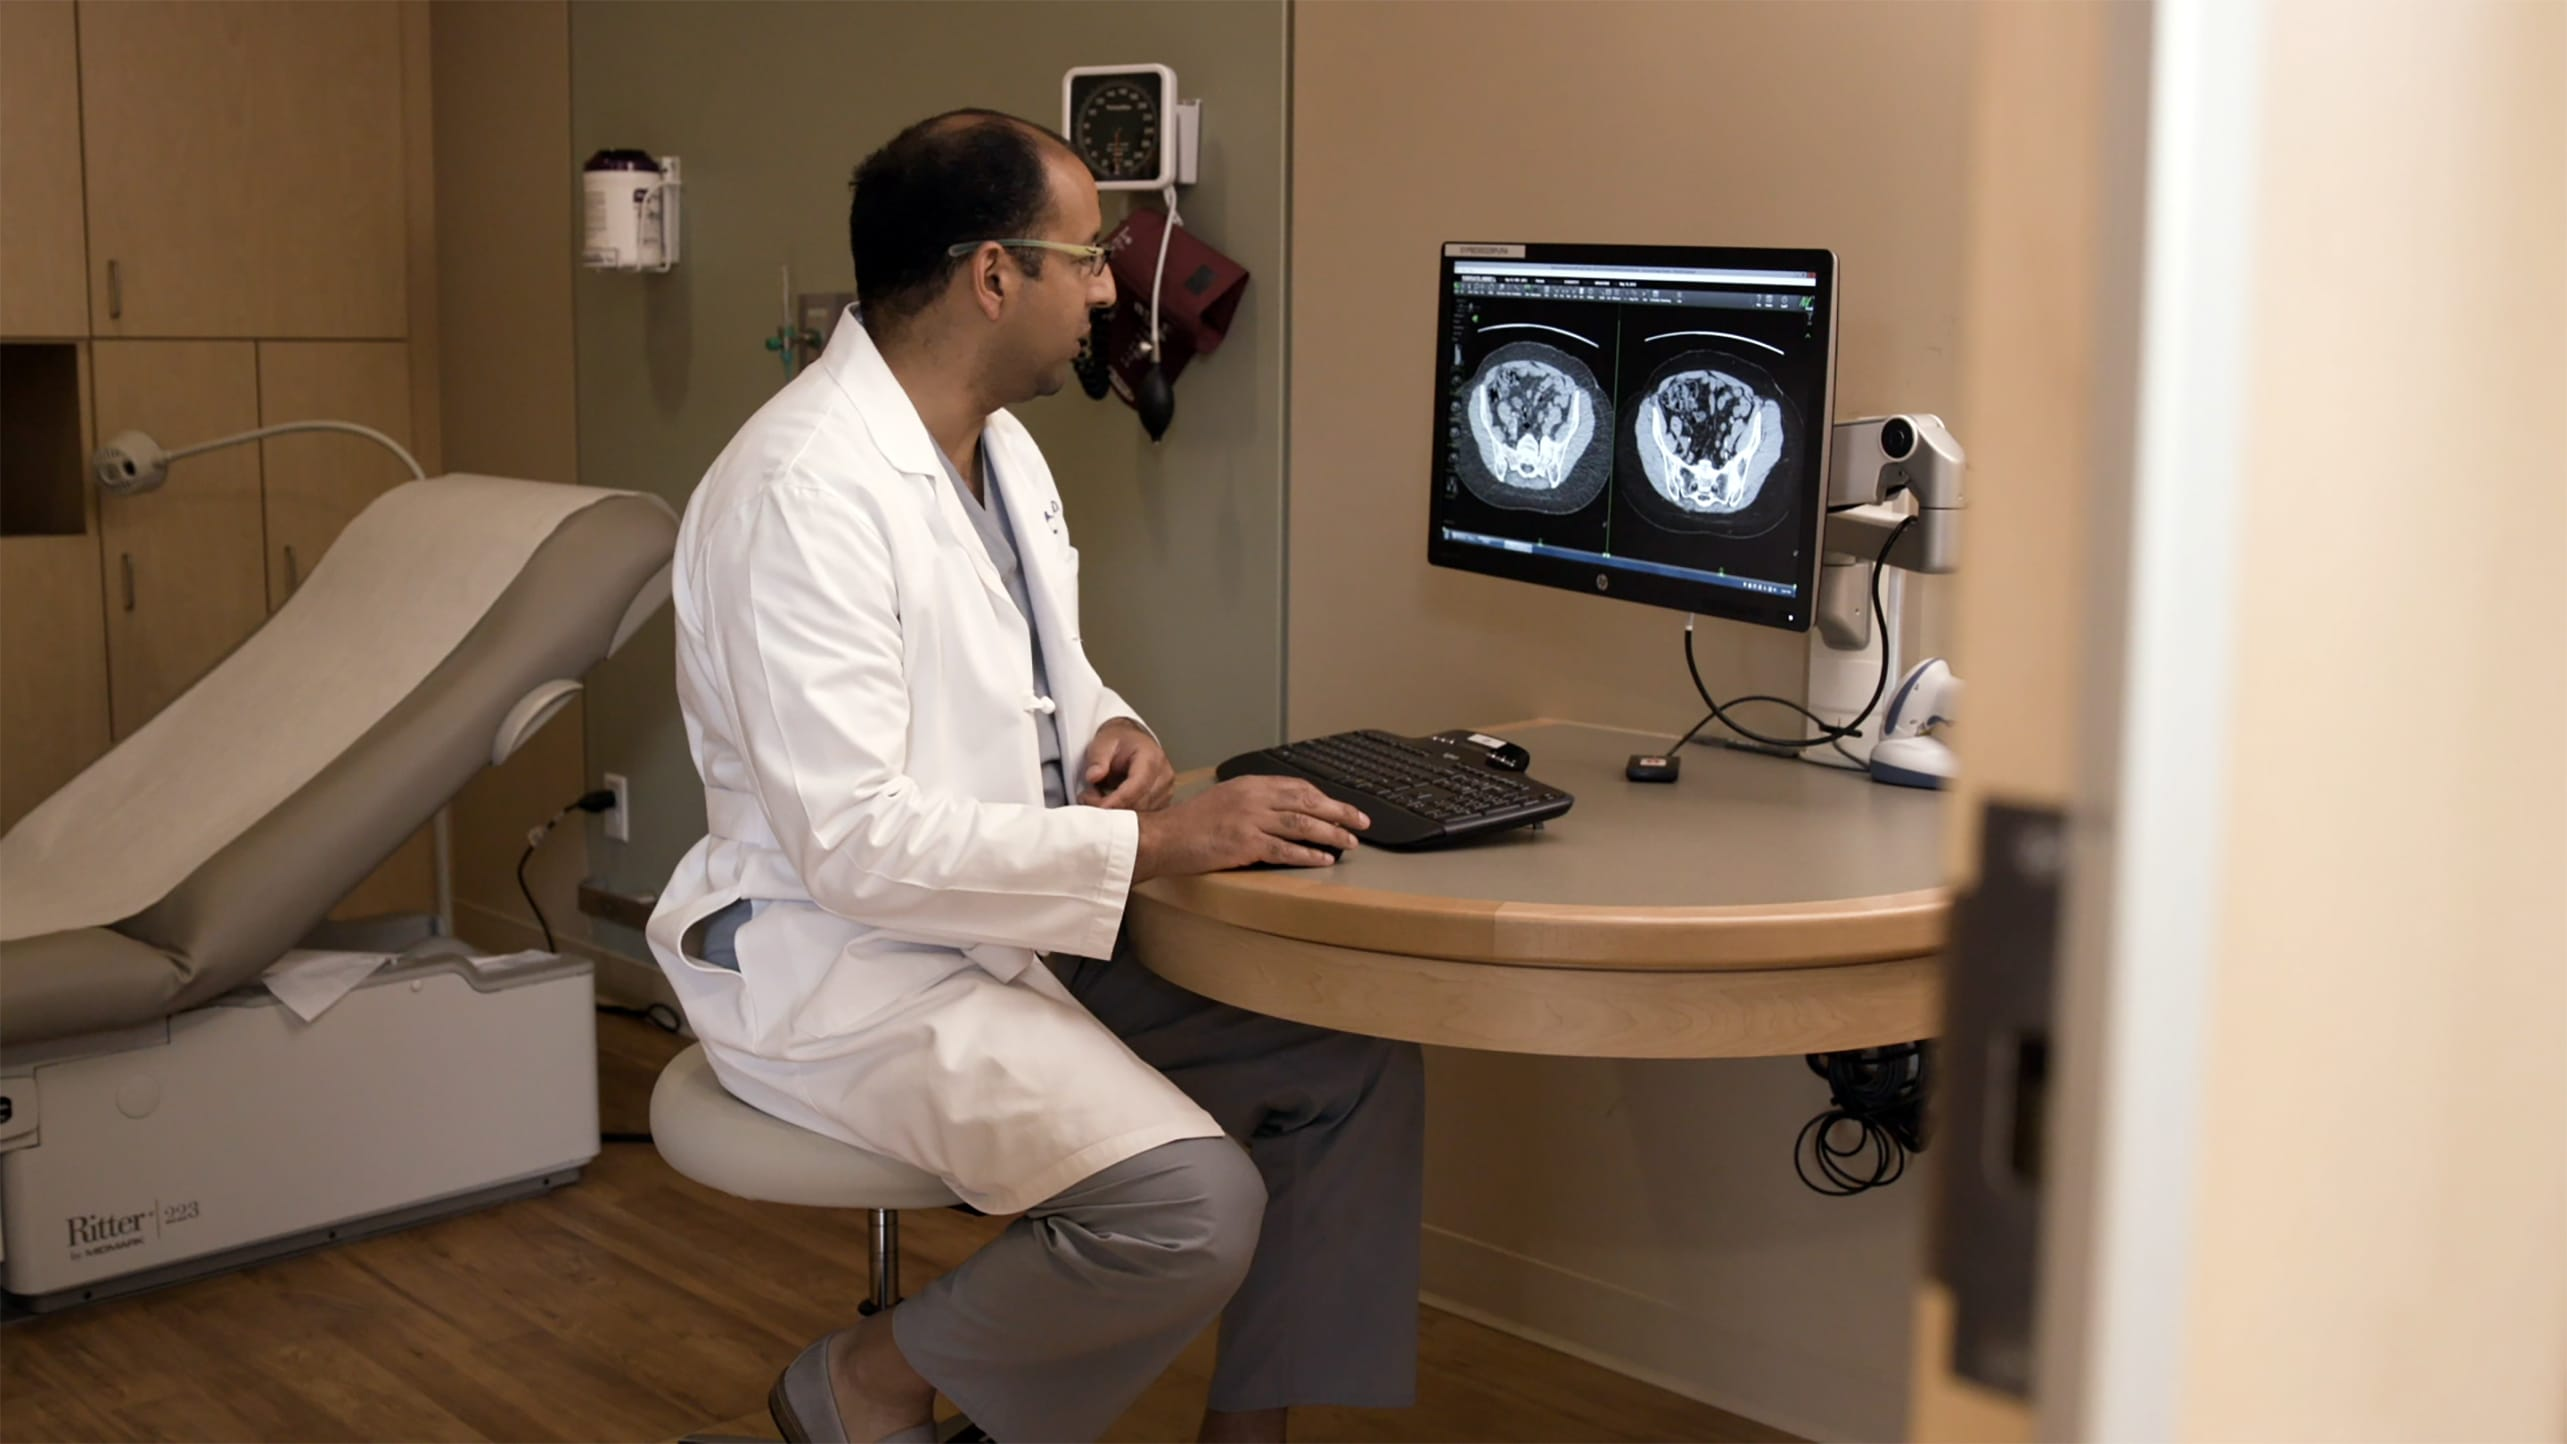 A doctor examines two different types of CT scans in a clinic.